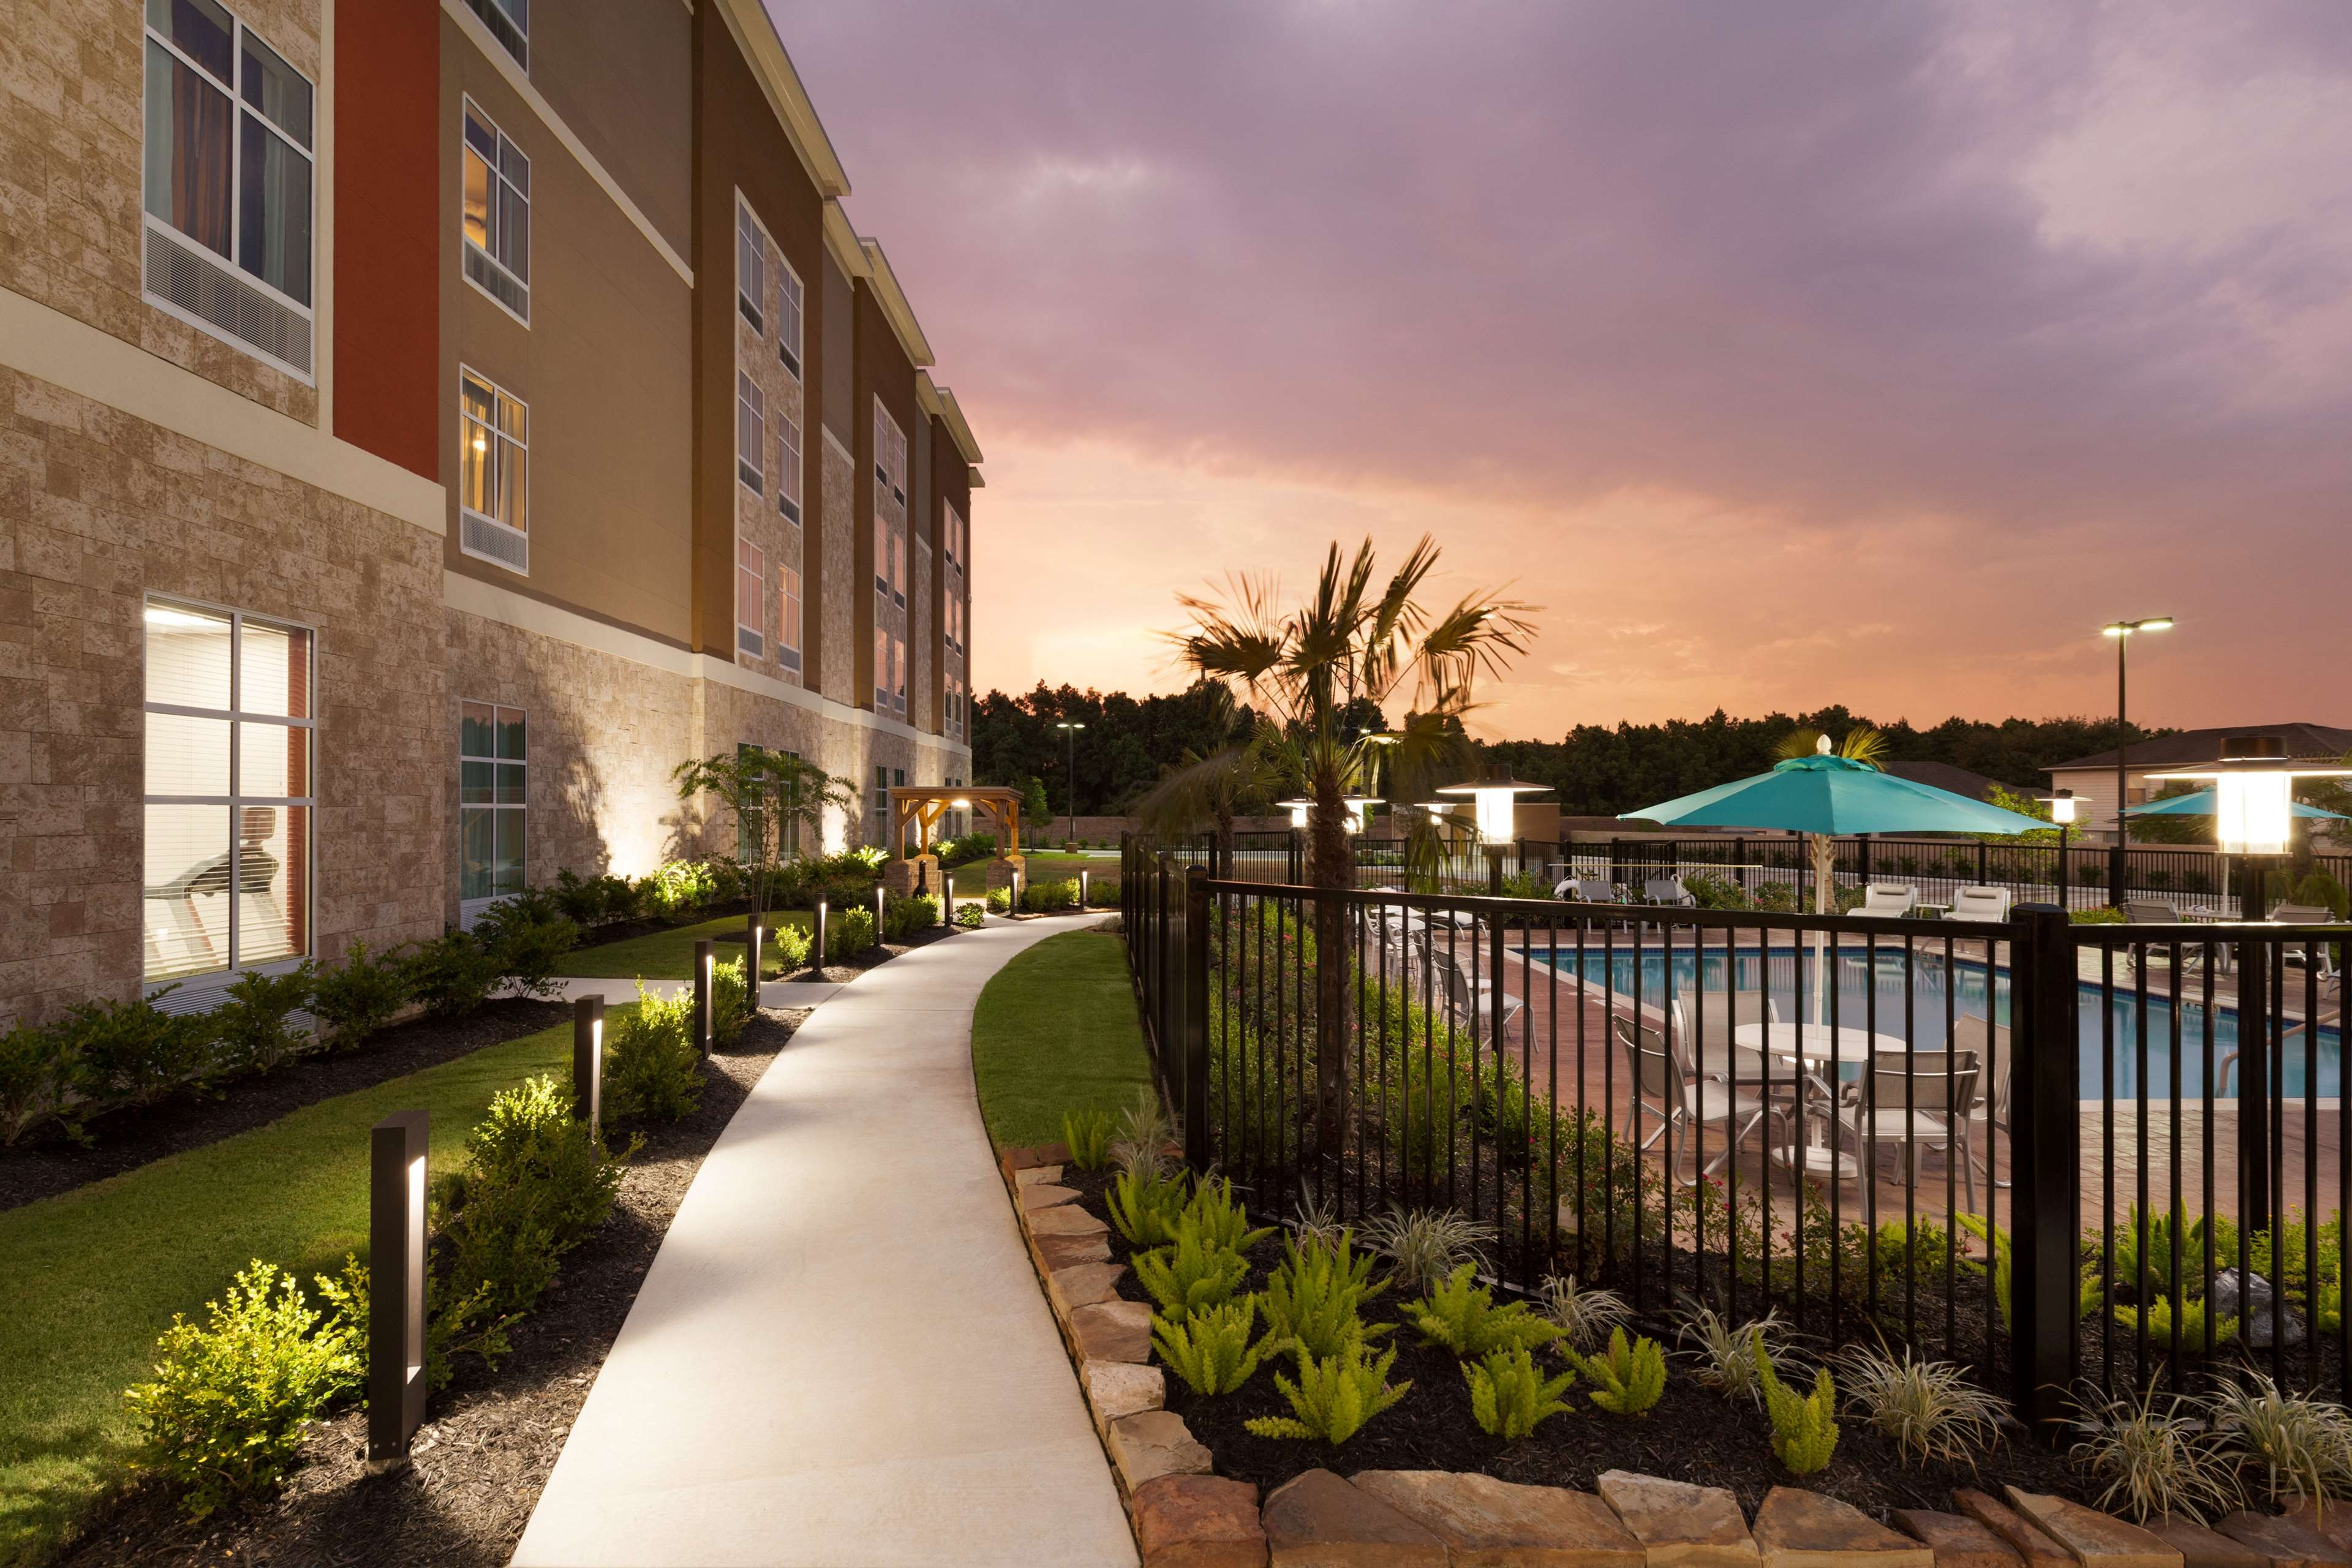 Homewood Suites by Hilton North Houston/Spring image 10